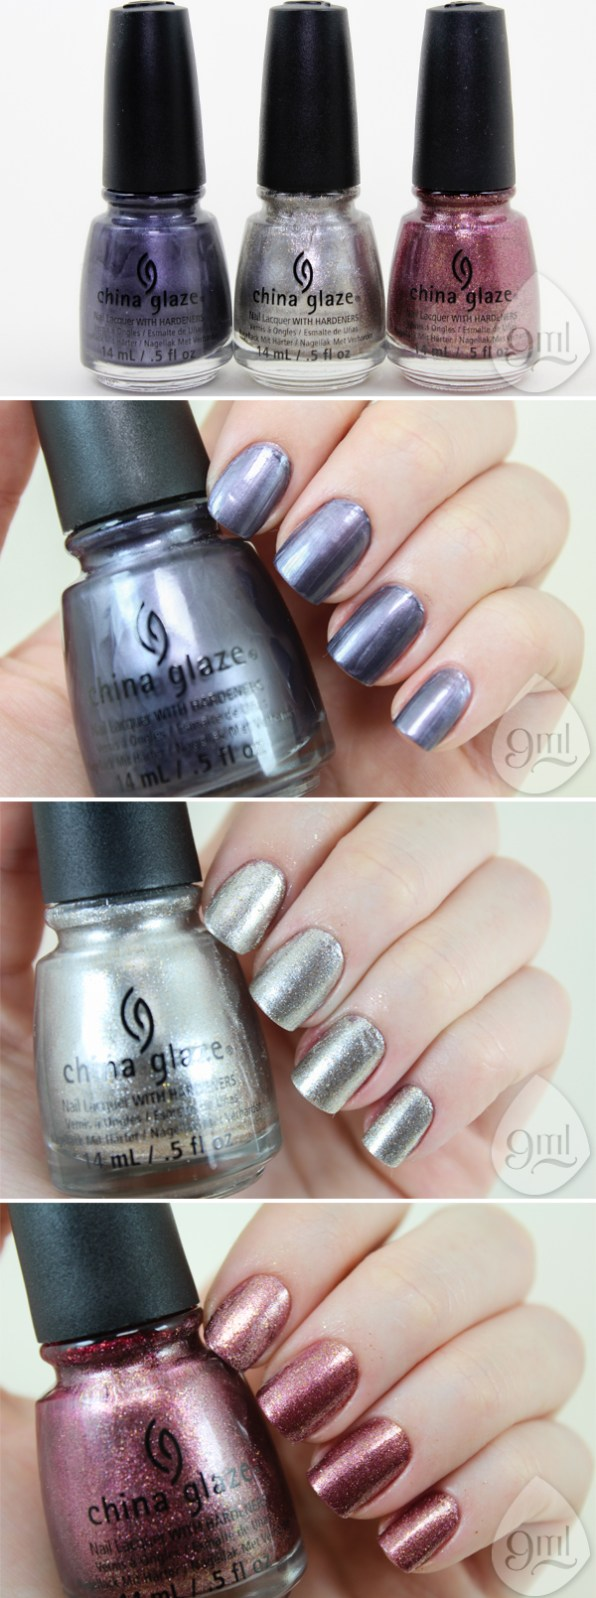 China Glaze -  Autumn Nights - 9ml - Sue Brandao